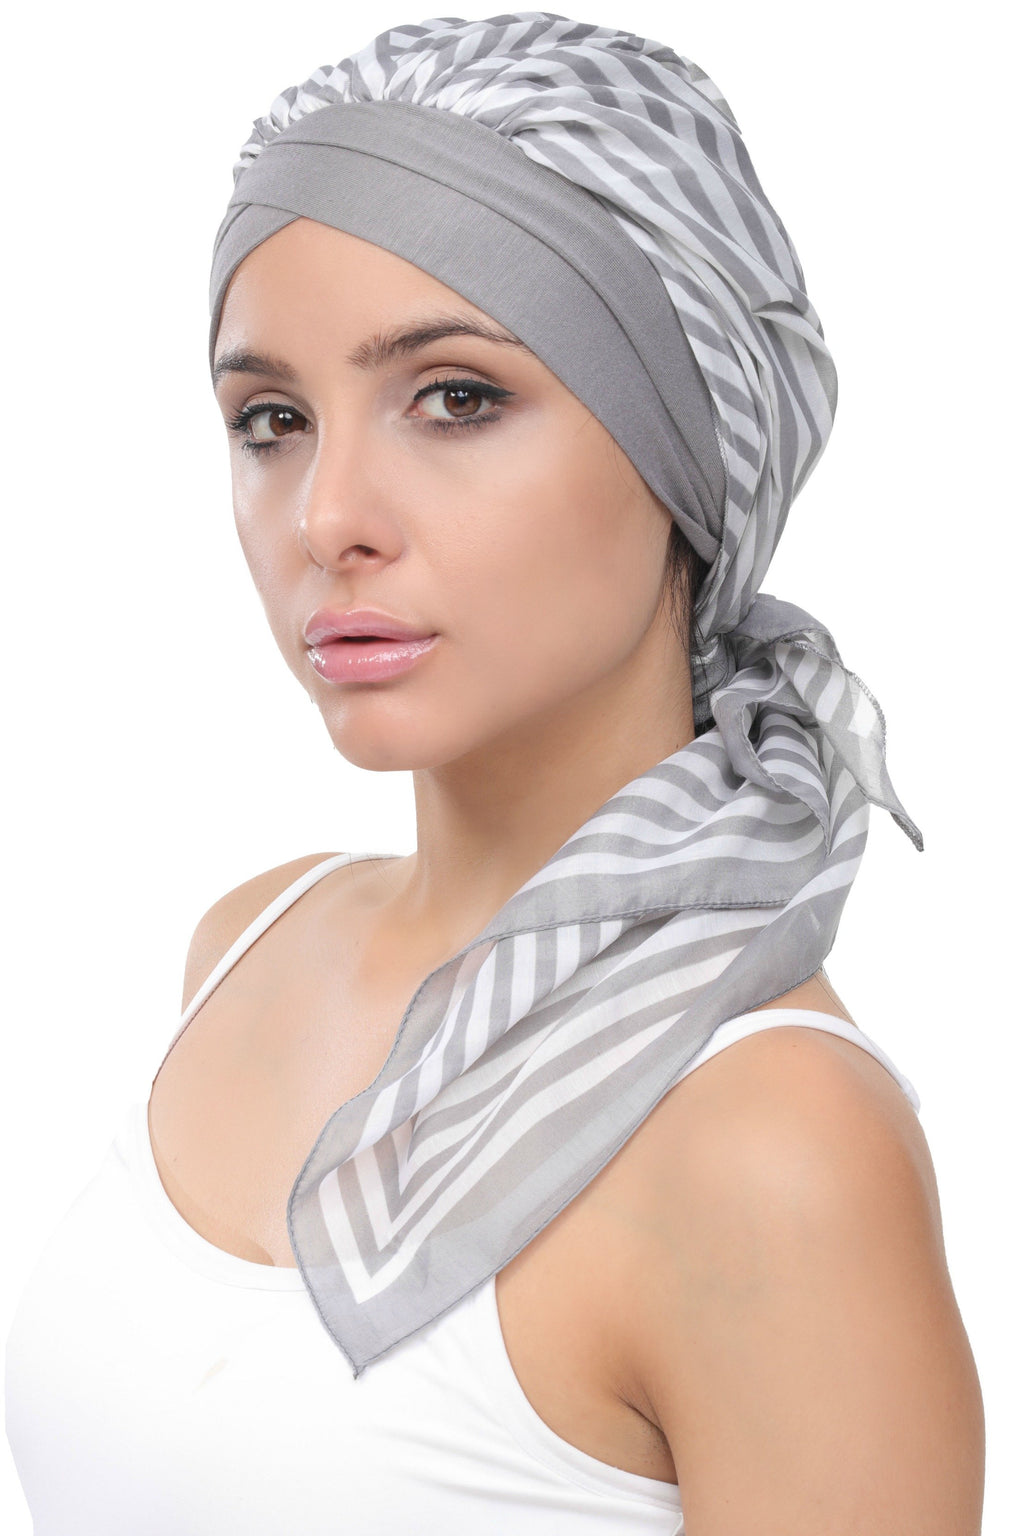 Deresina W cap with attached chemo headscarf style35 grey printed